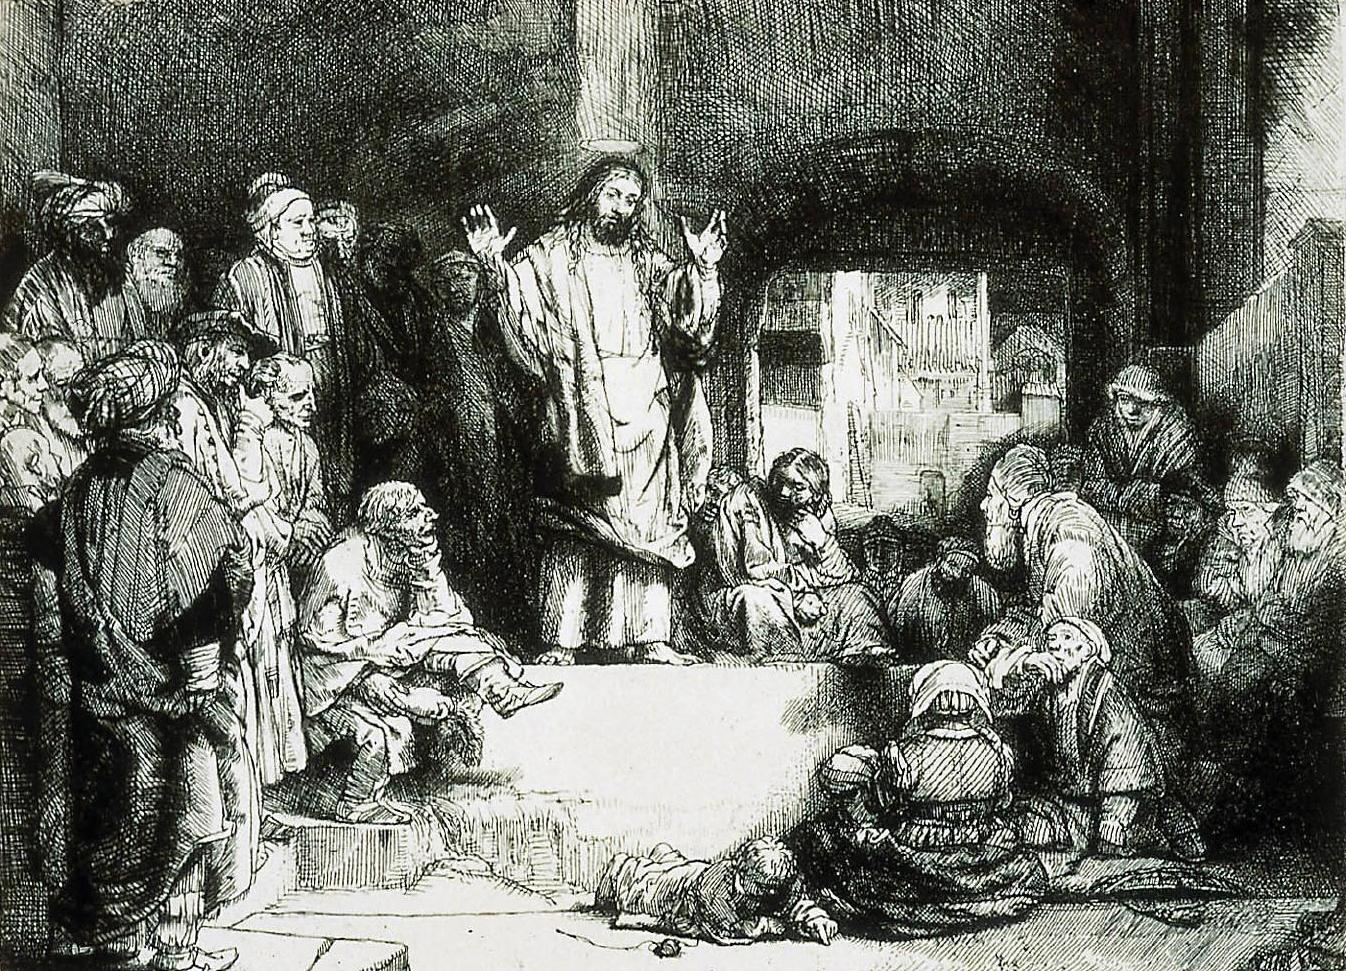 Christ Preaching (1652), by Rembrandt.